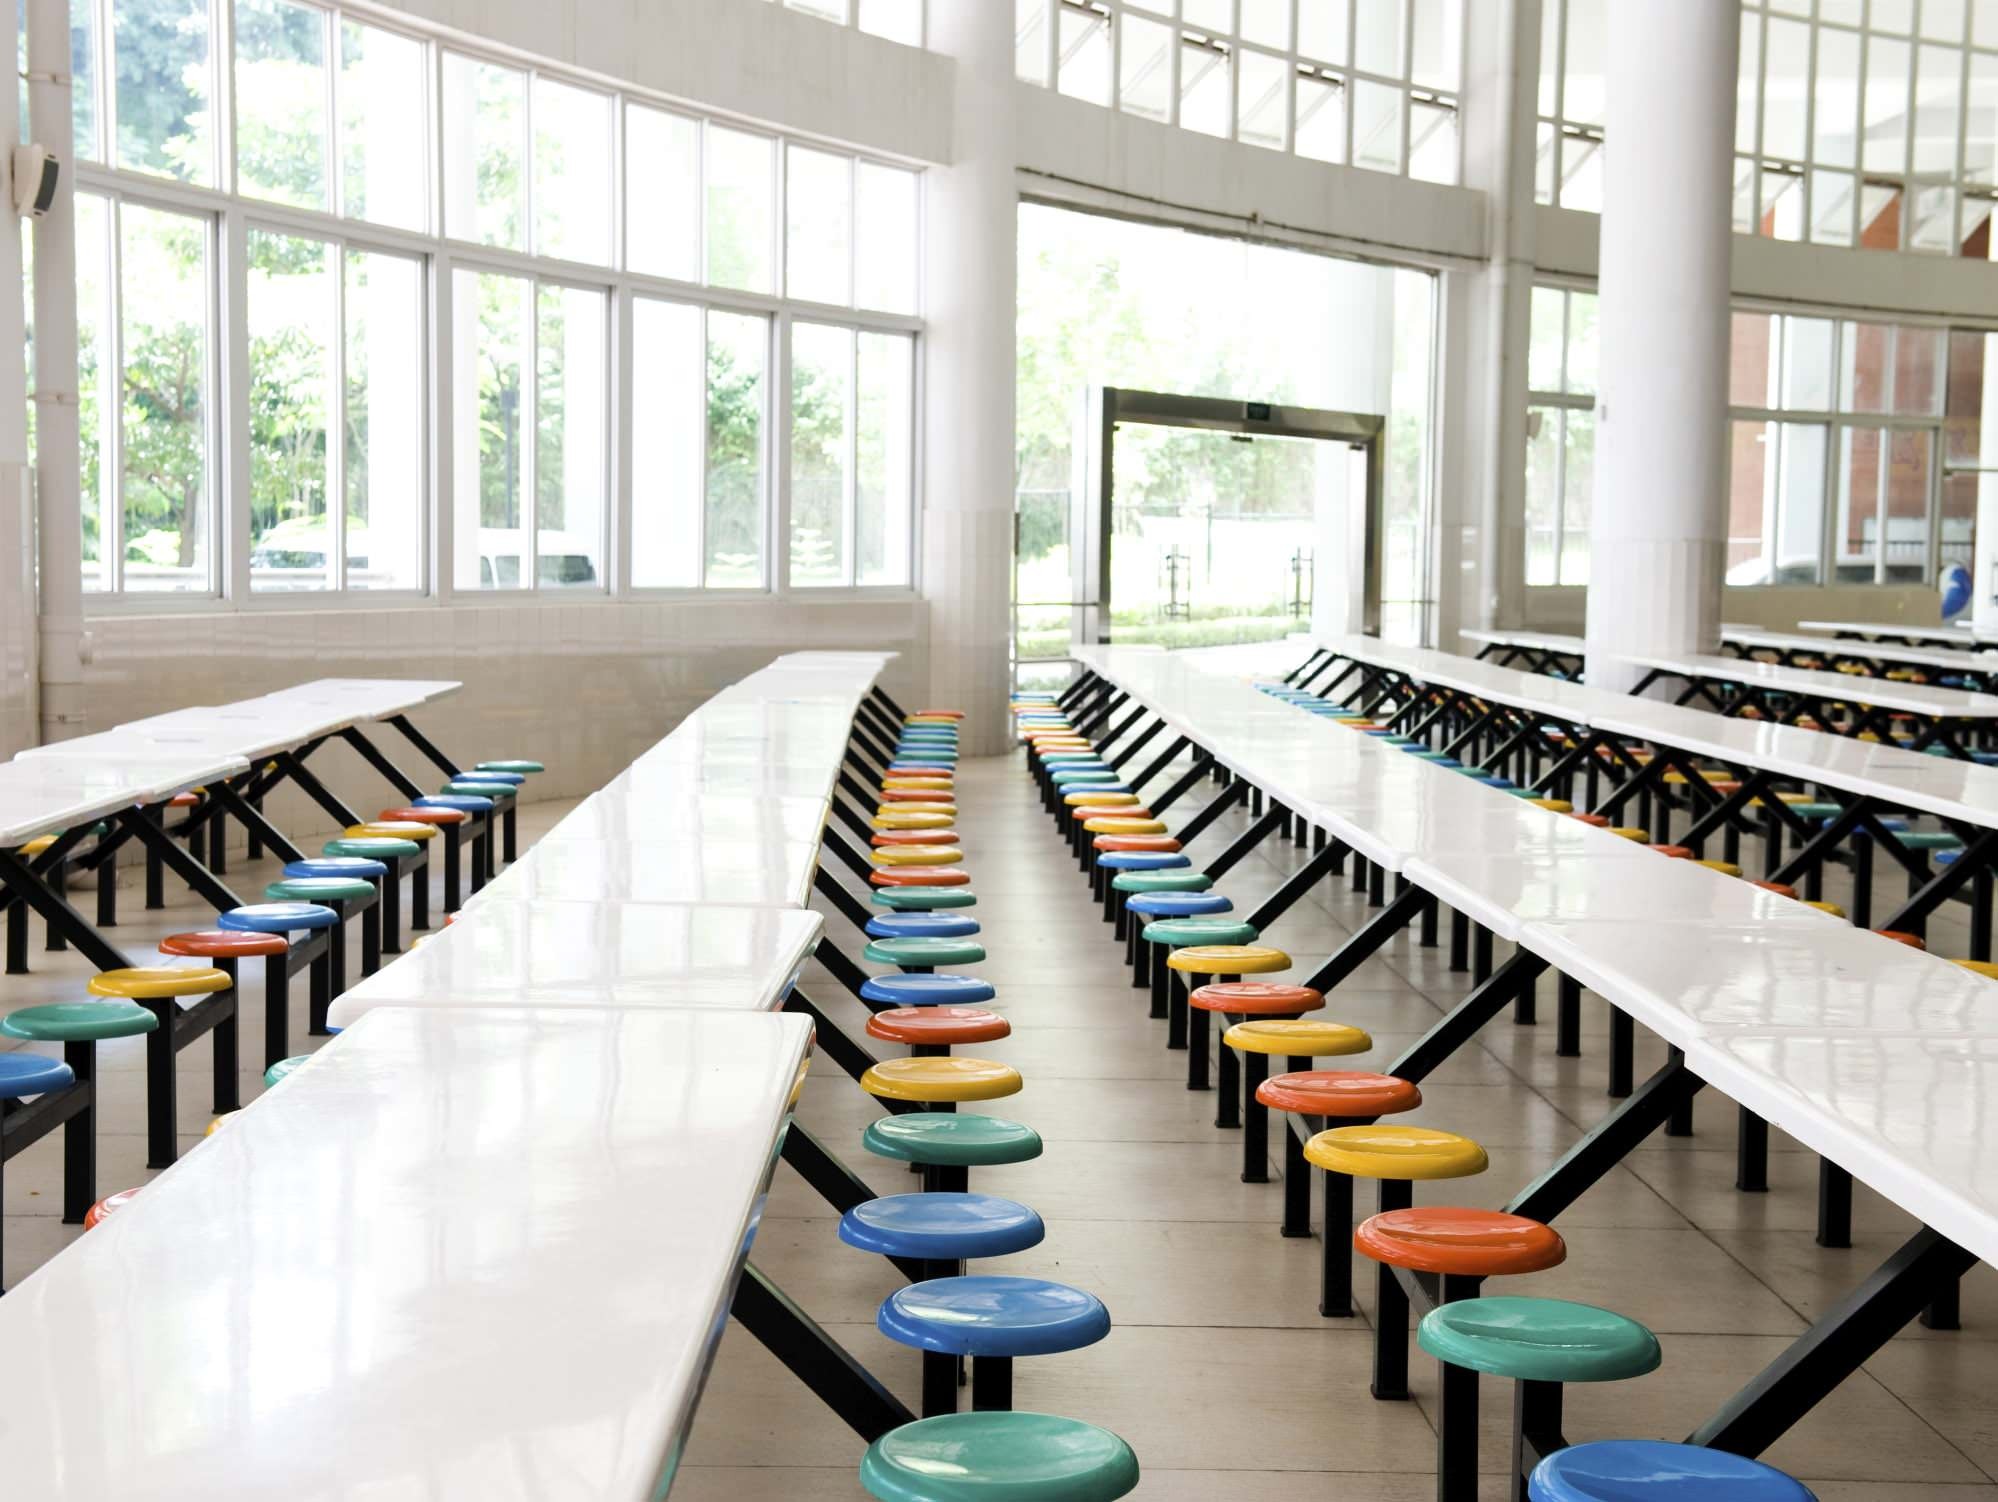 File photo of school cafeteria (Thinkstock)